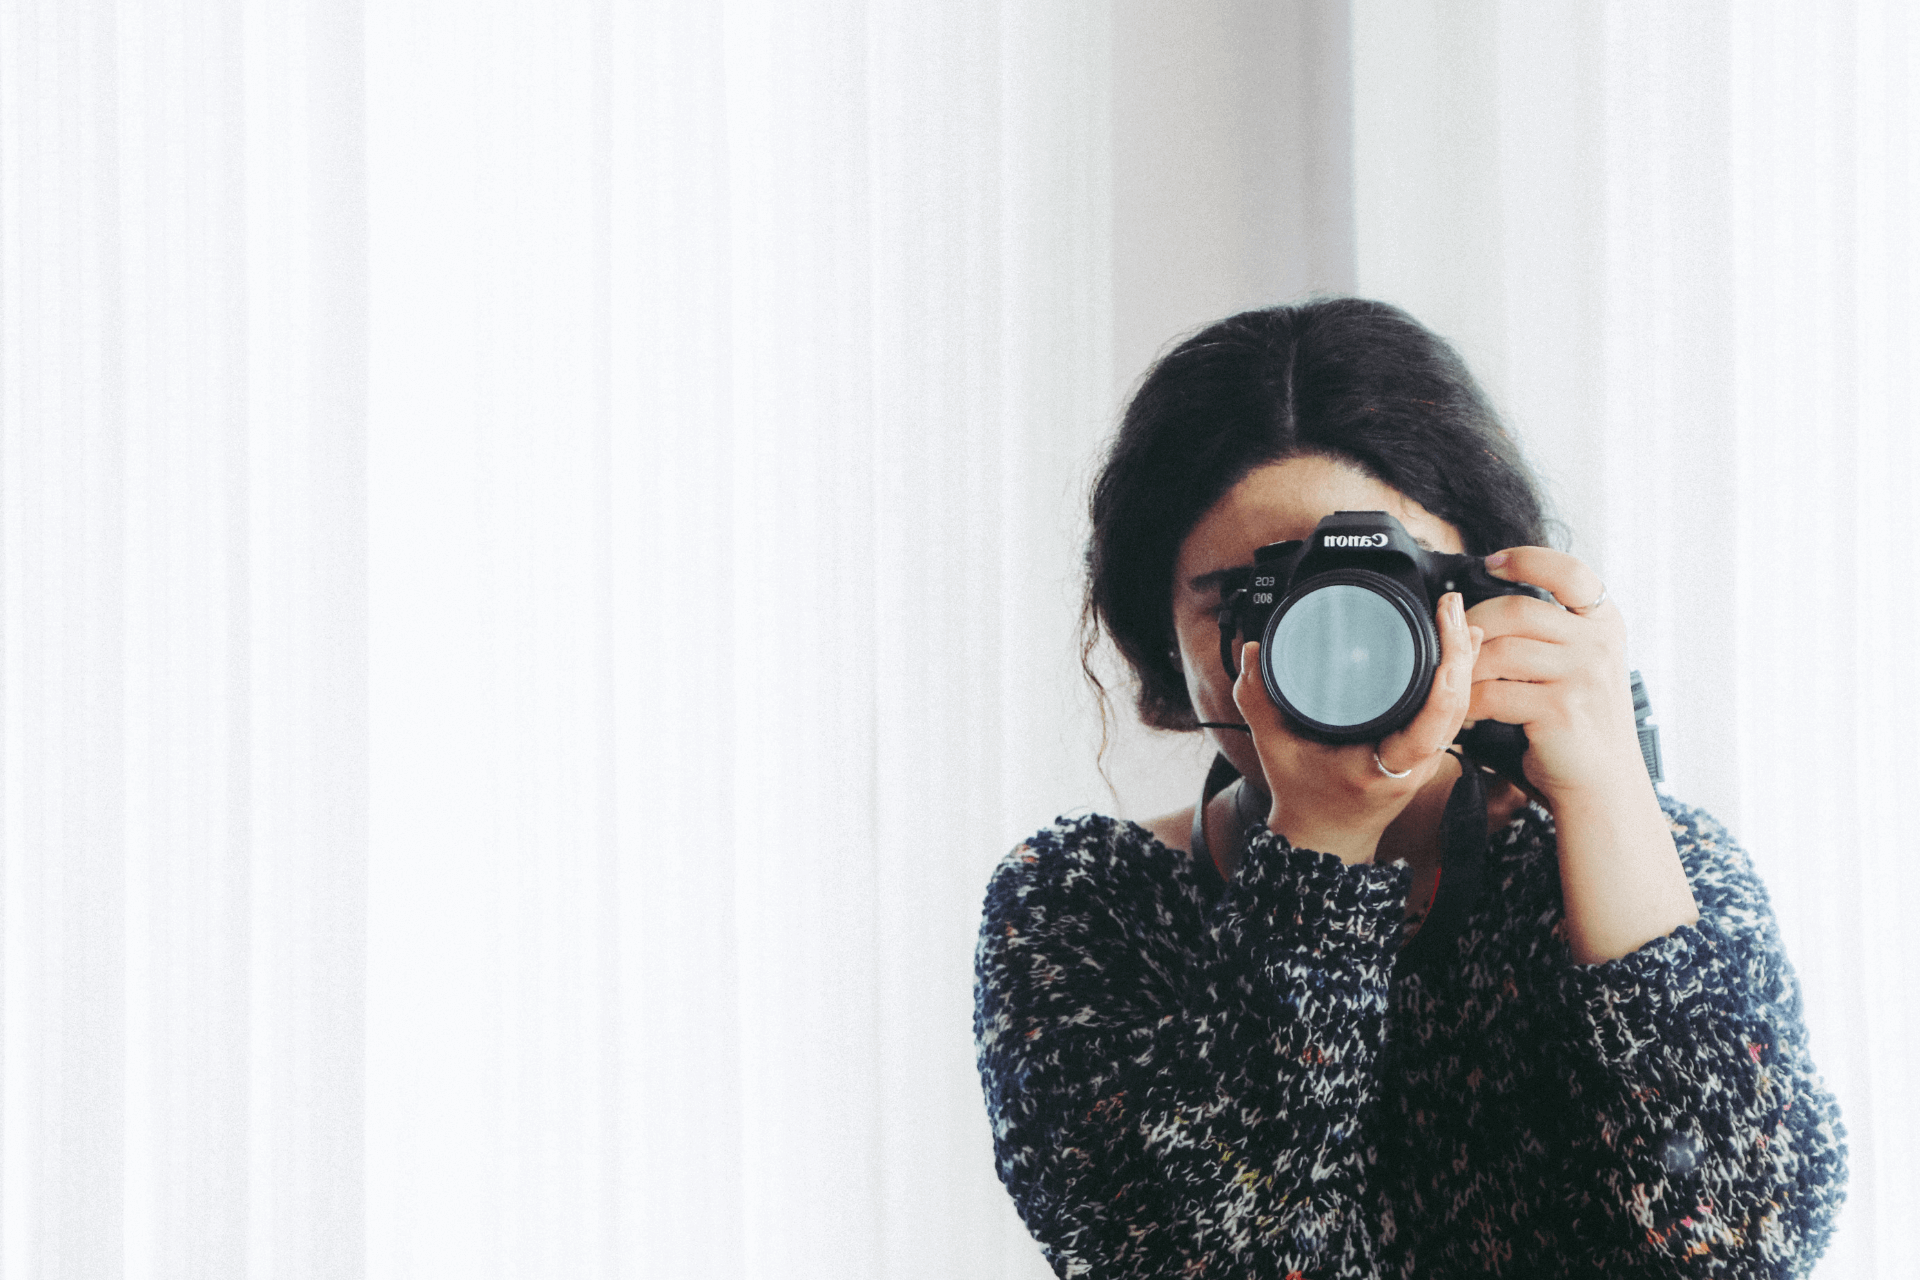 This image portrays a photographer taking a photo shot and represents the importance of good images for social media advertising for nonprofits